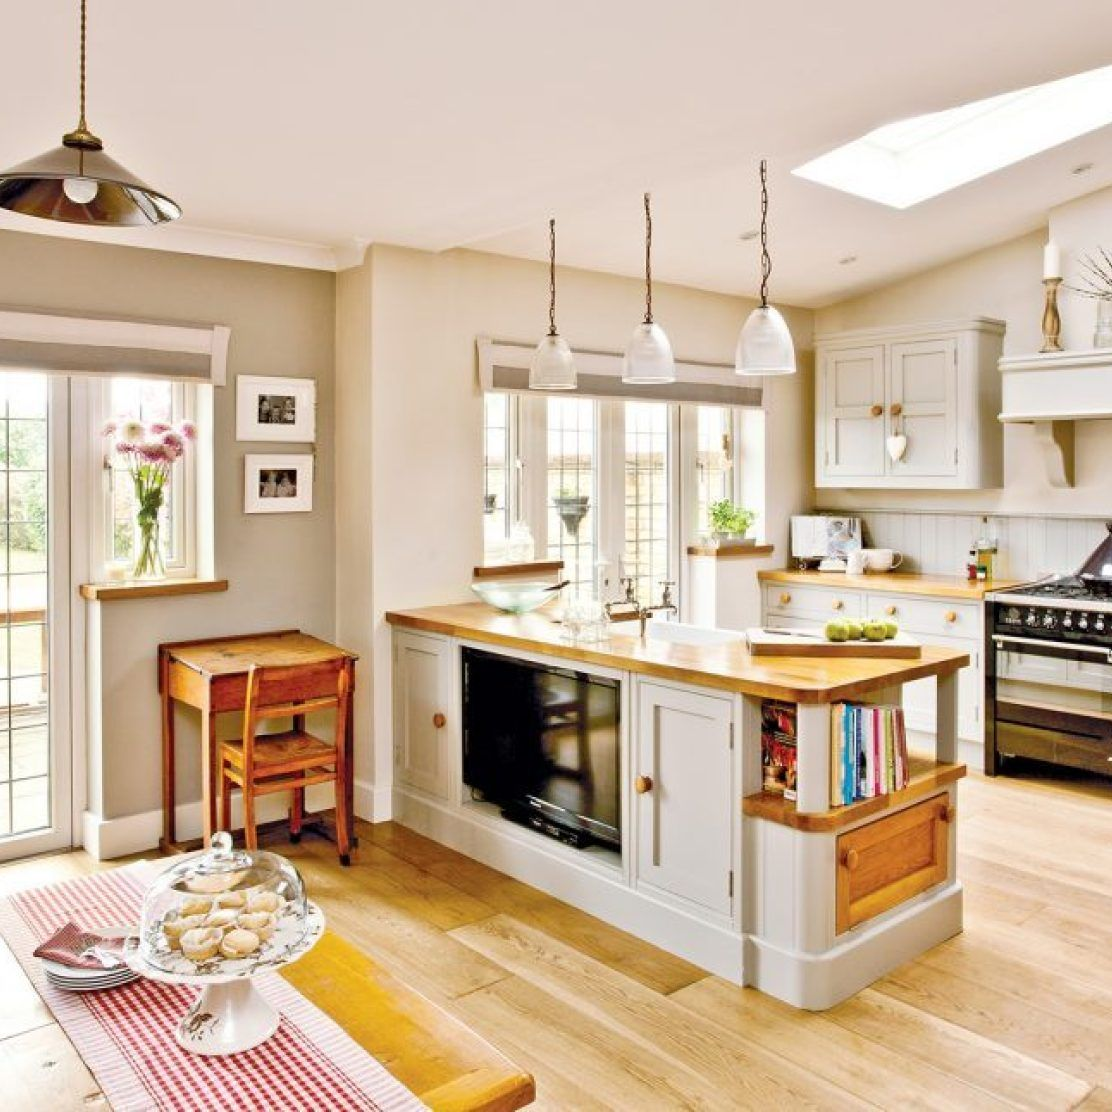 36 Kitchen Diner Extension Small Open Plan The Story Beterhome Open Plan Kitchen Living Room Small Kitchen Diner Open Plan Kitchen Dining